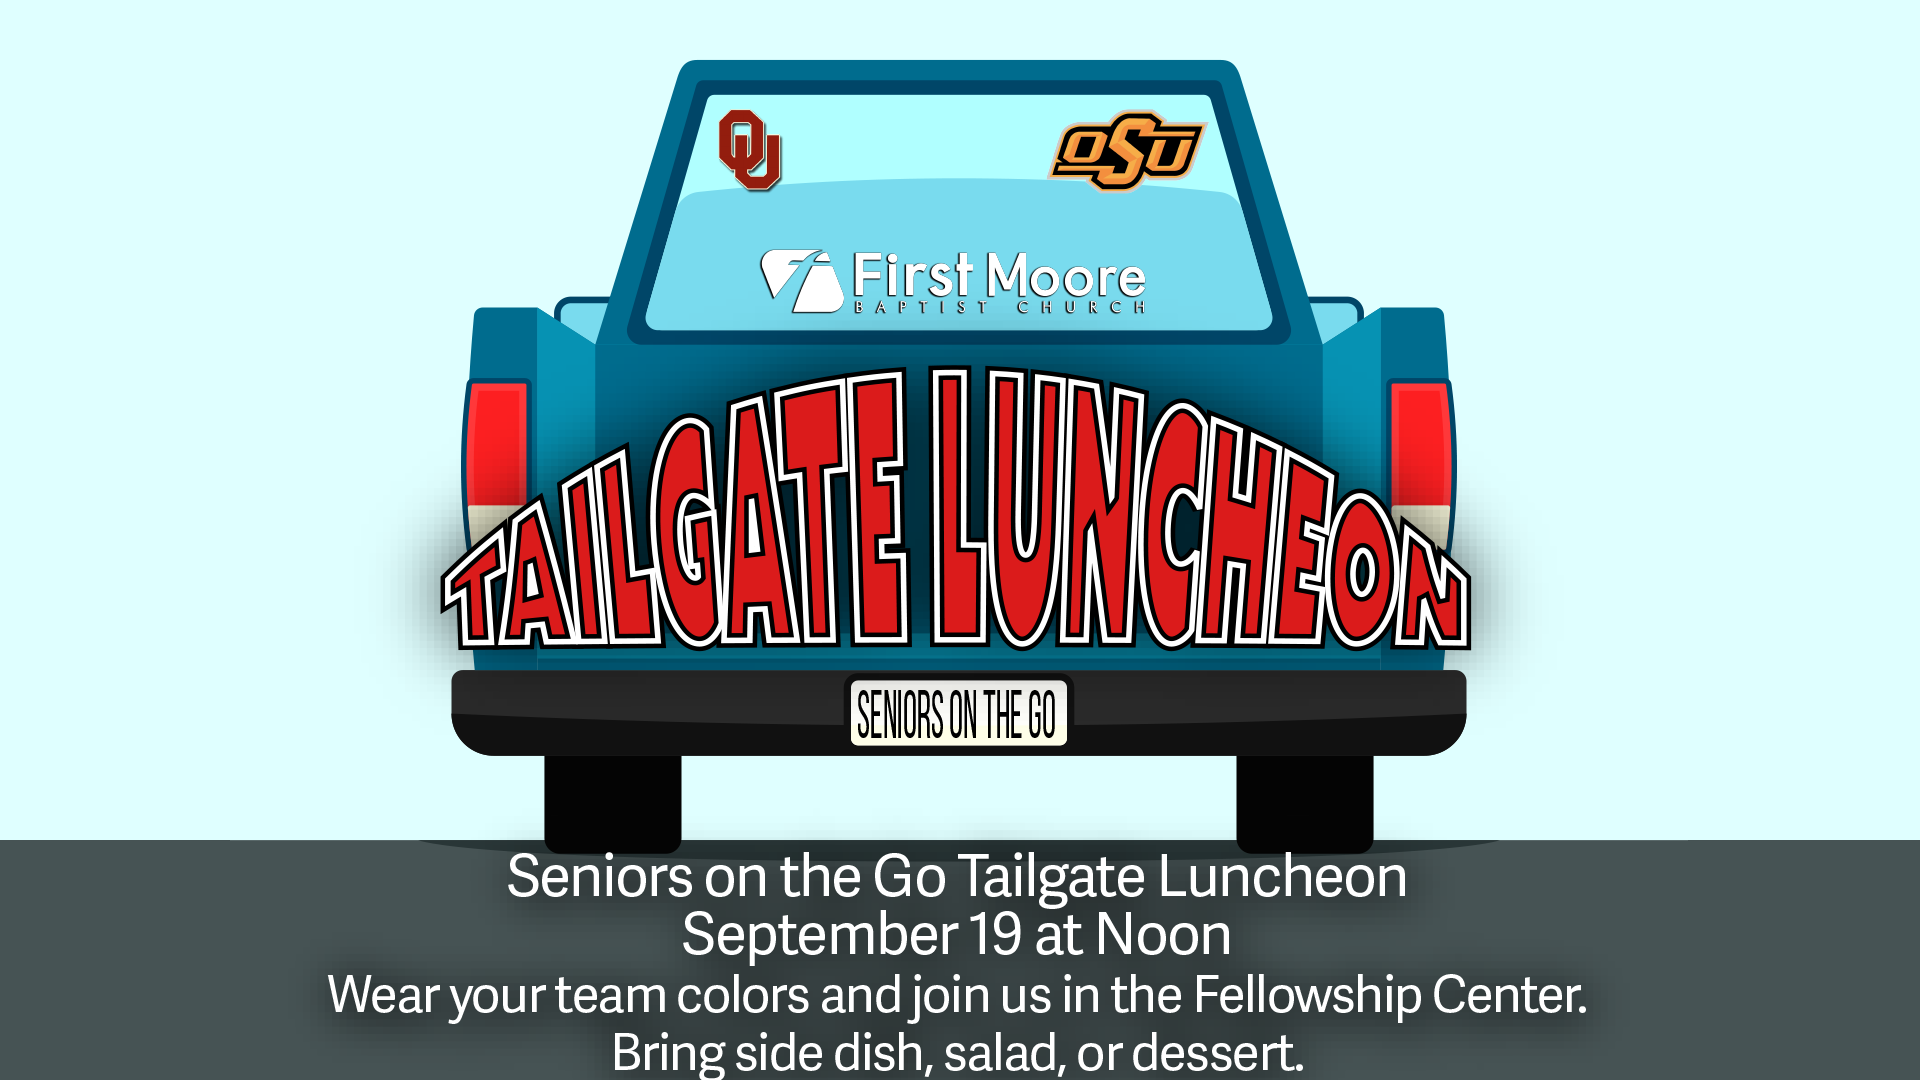 Seniors_On_the_Go_Tailgate-16x9.png